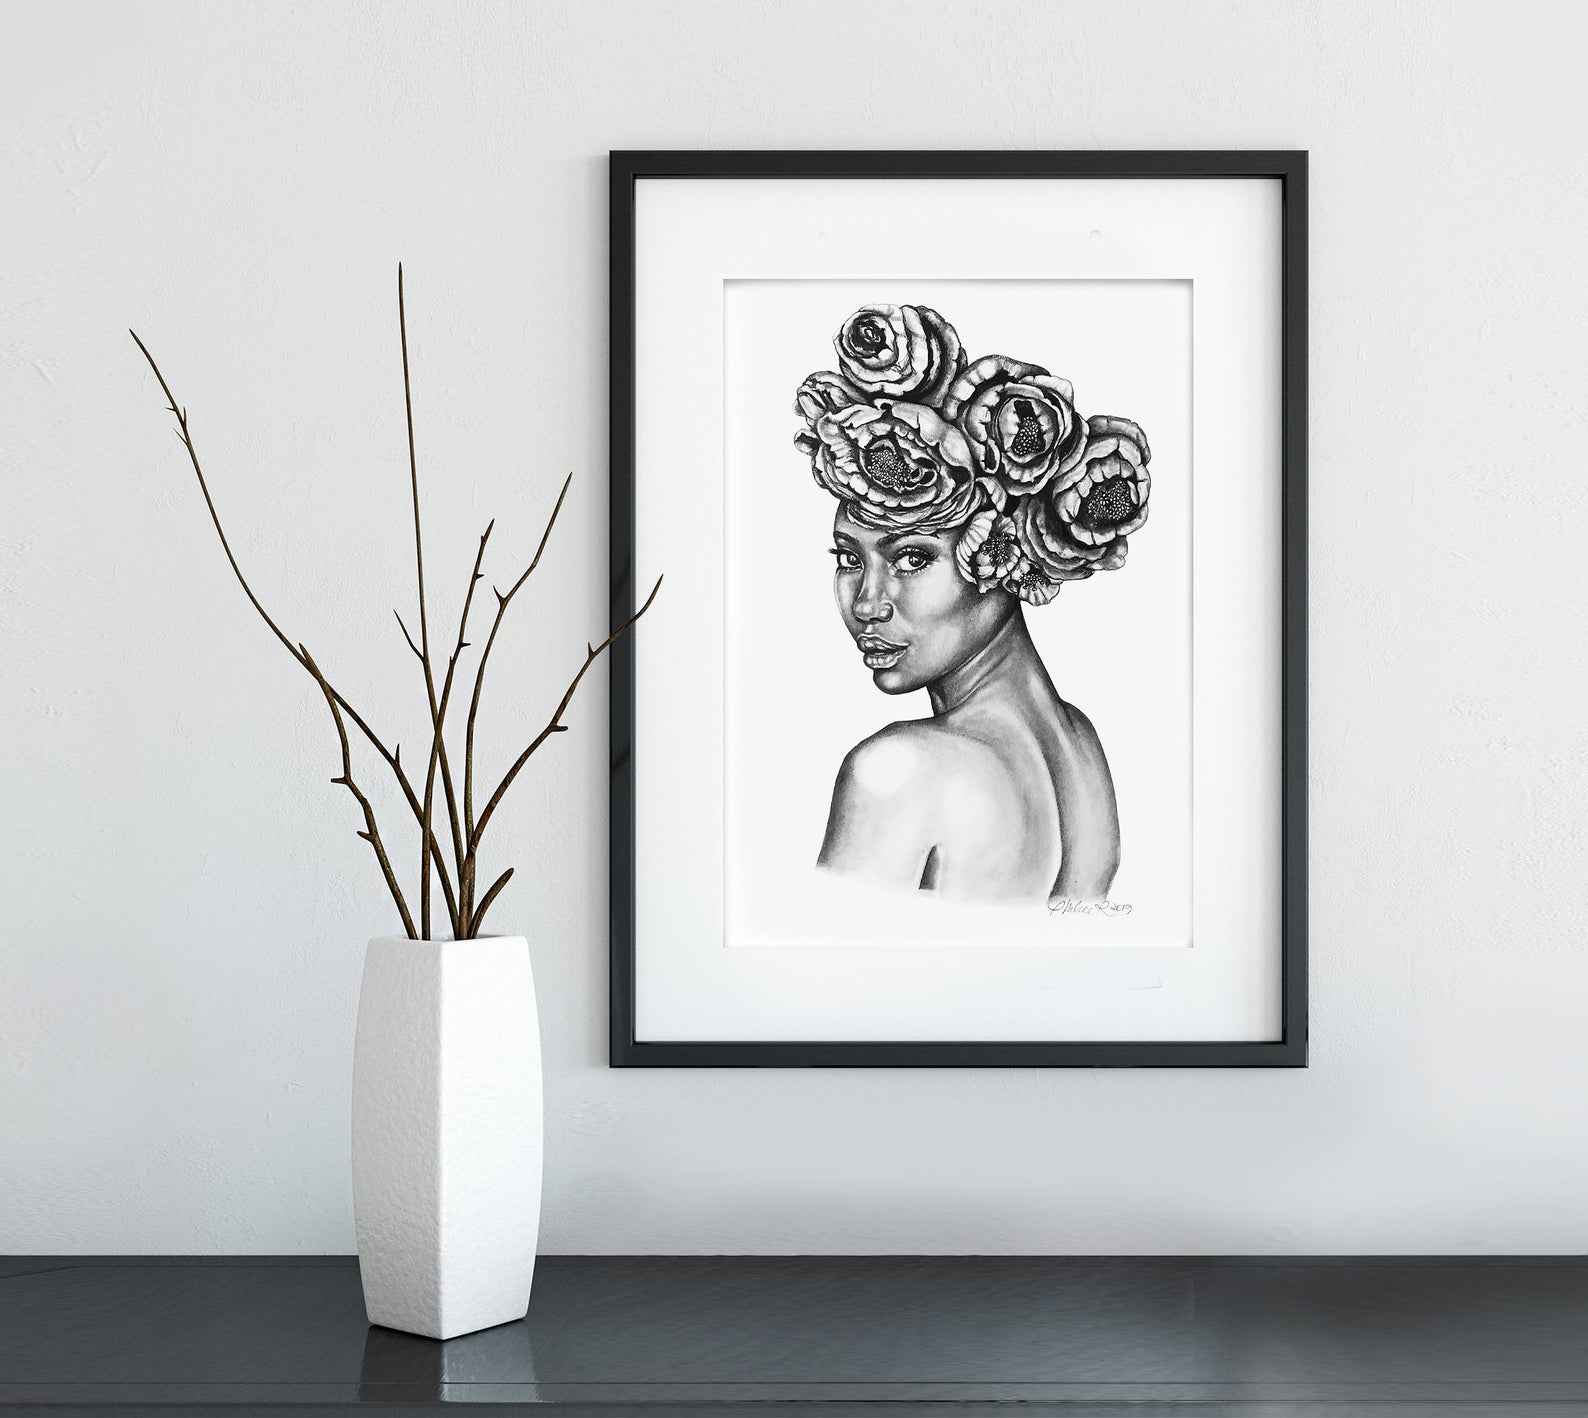 Branches in white pot and image in black frame on wall from black owned home decor brand